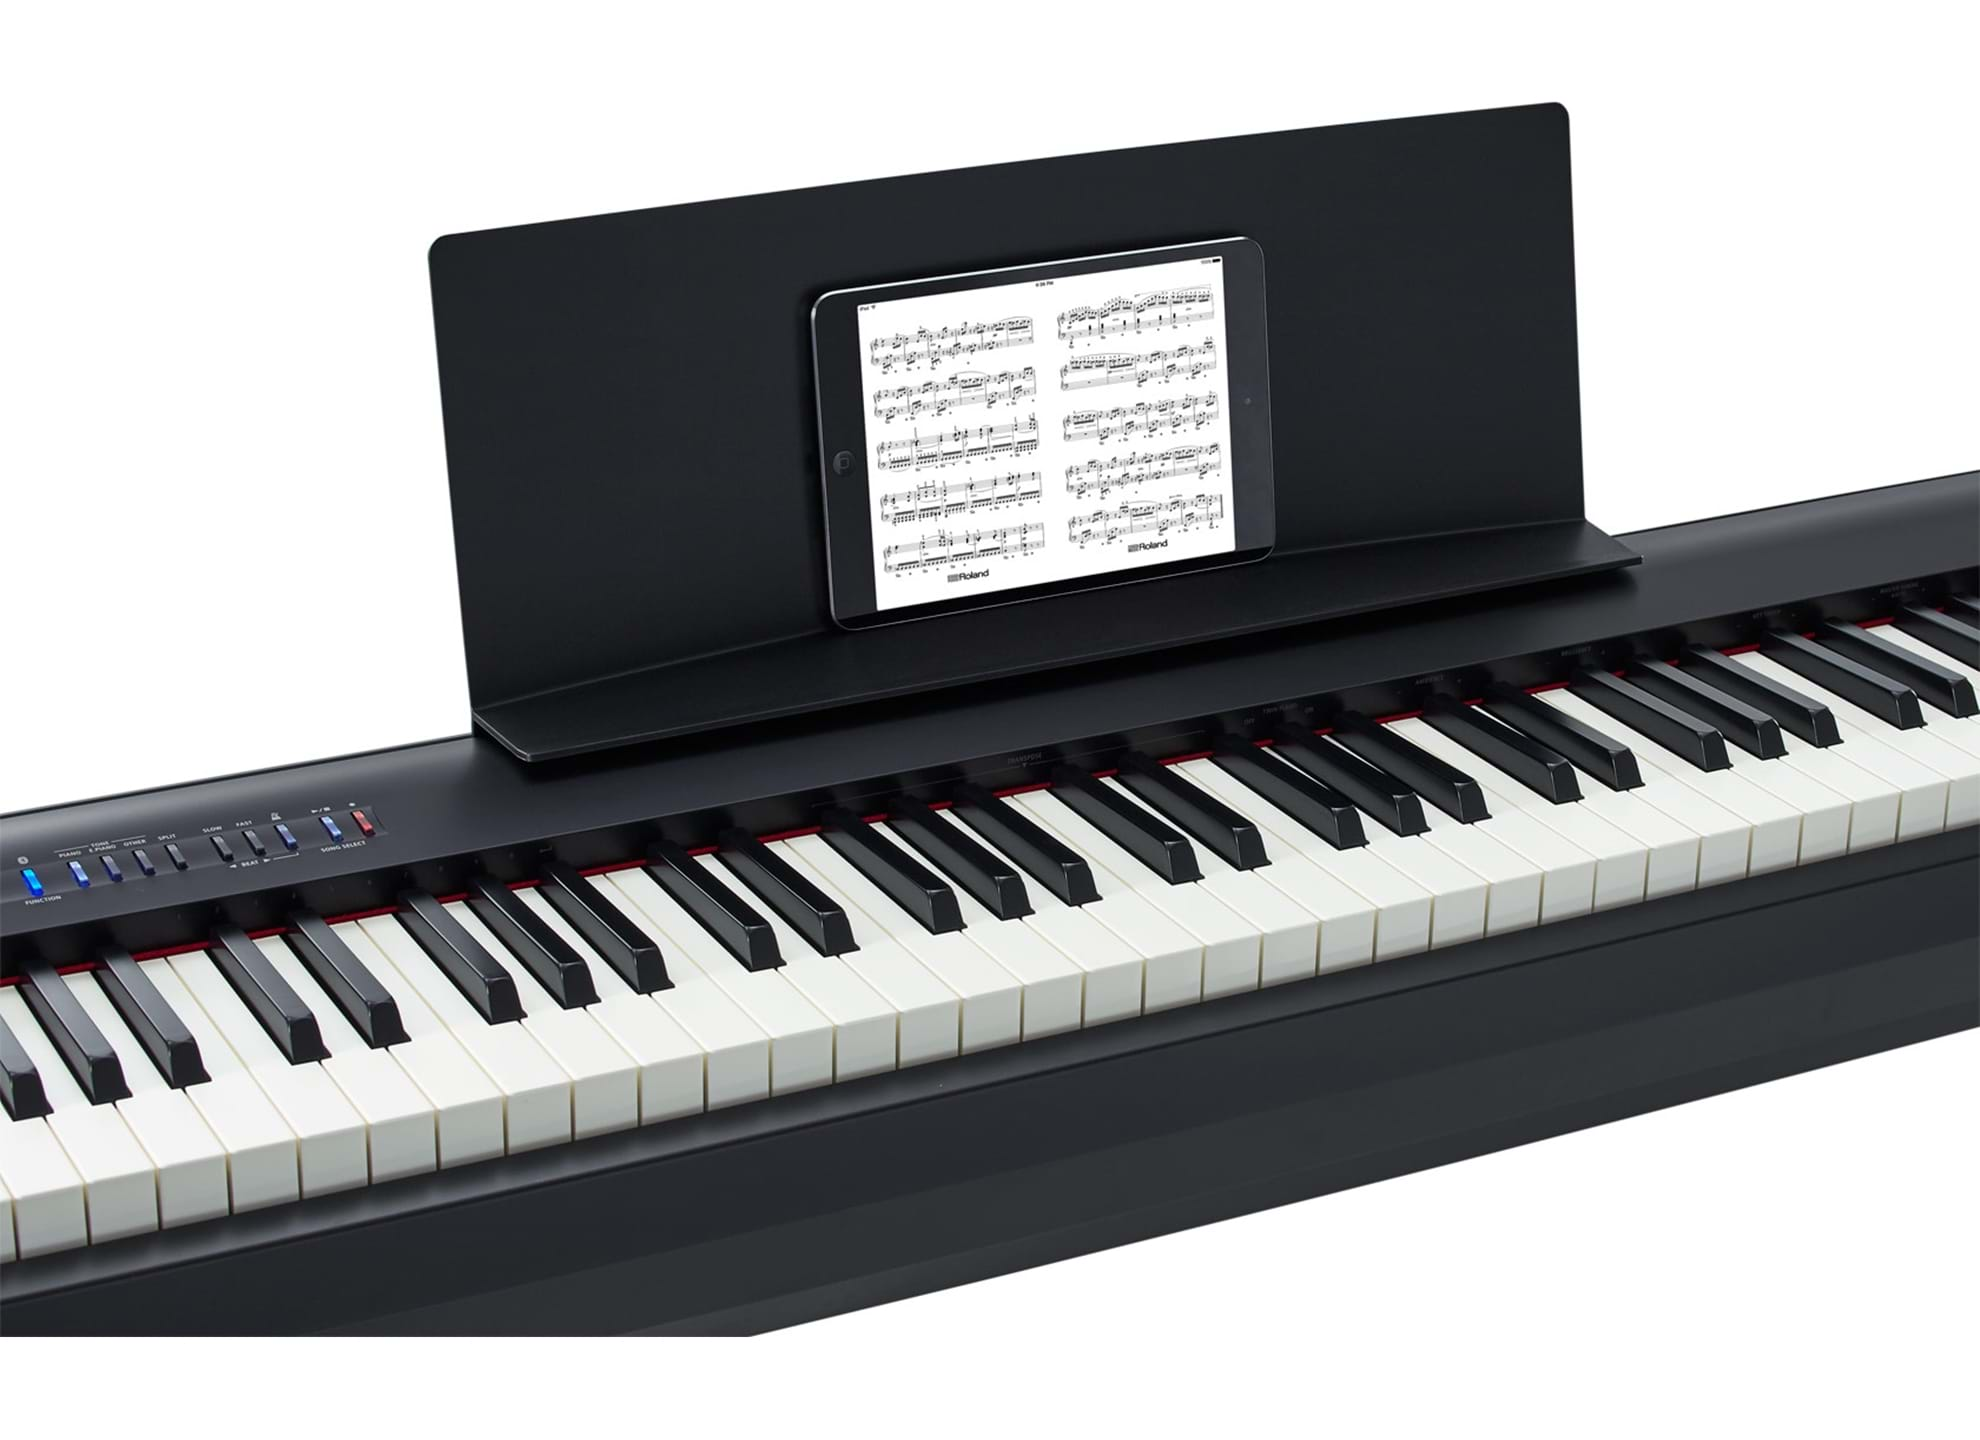 FP-30 Digital Piano Black